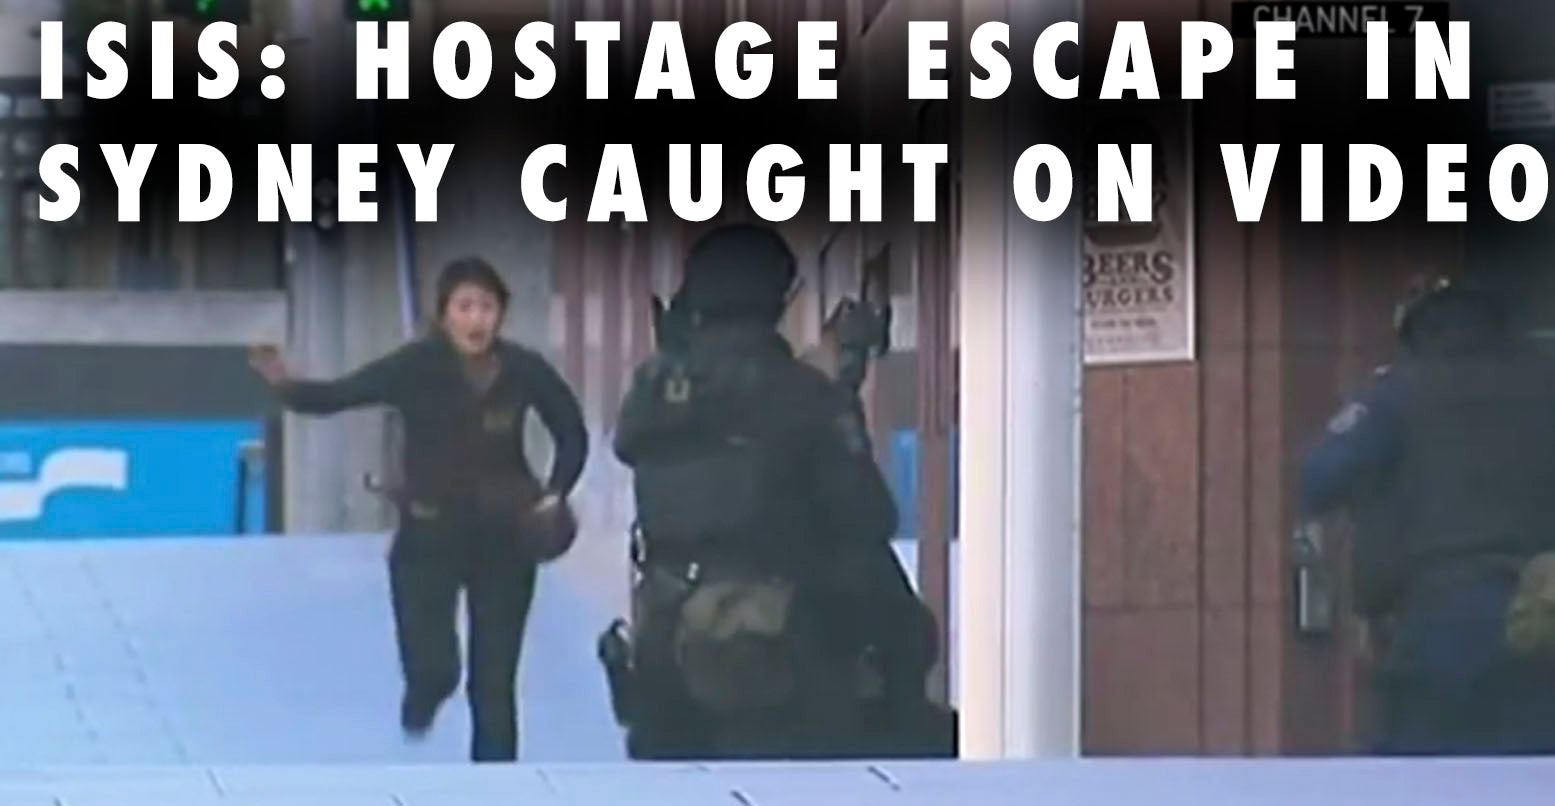 ISIS: Hostage Escape In Sydney Caught On VIDEO